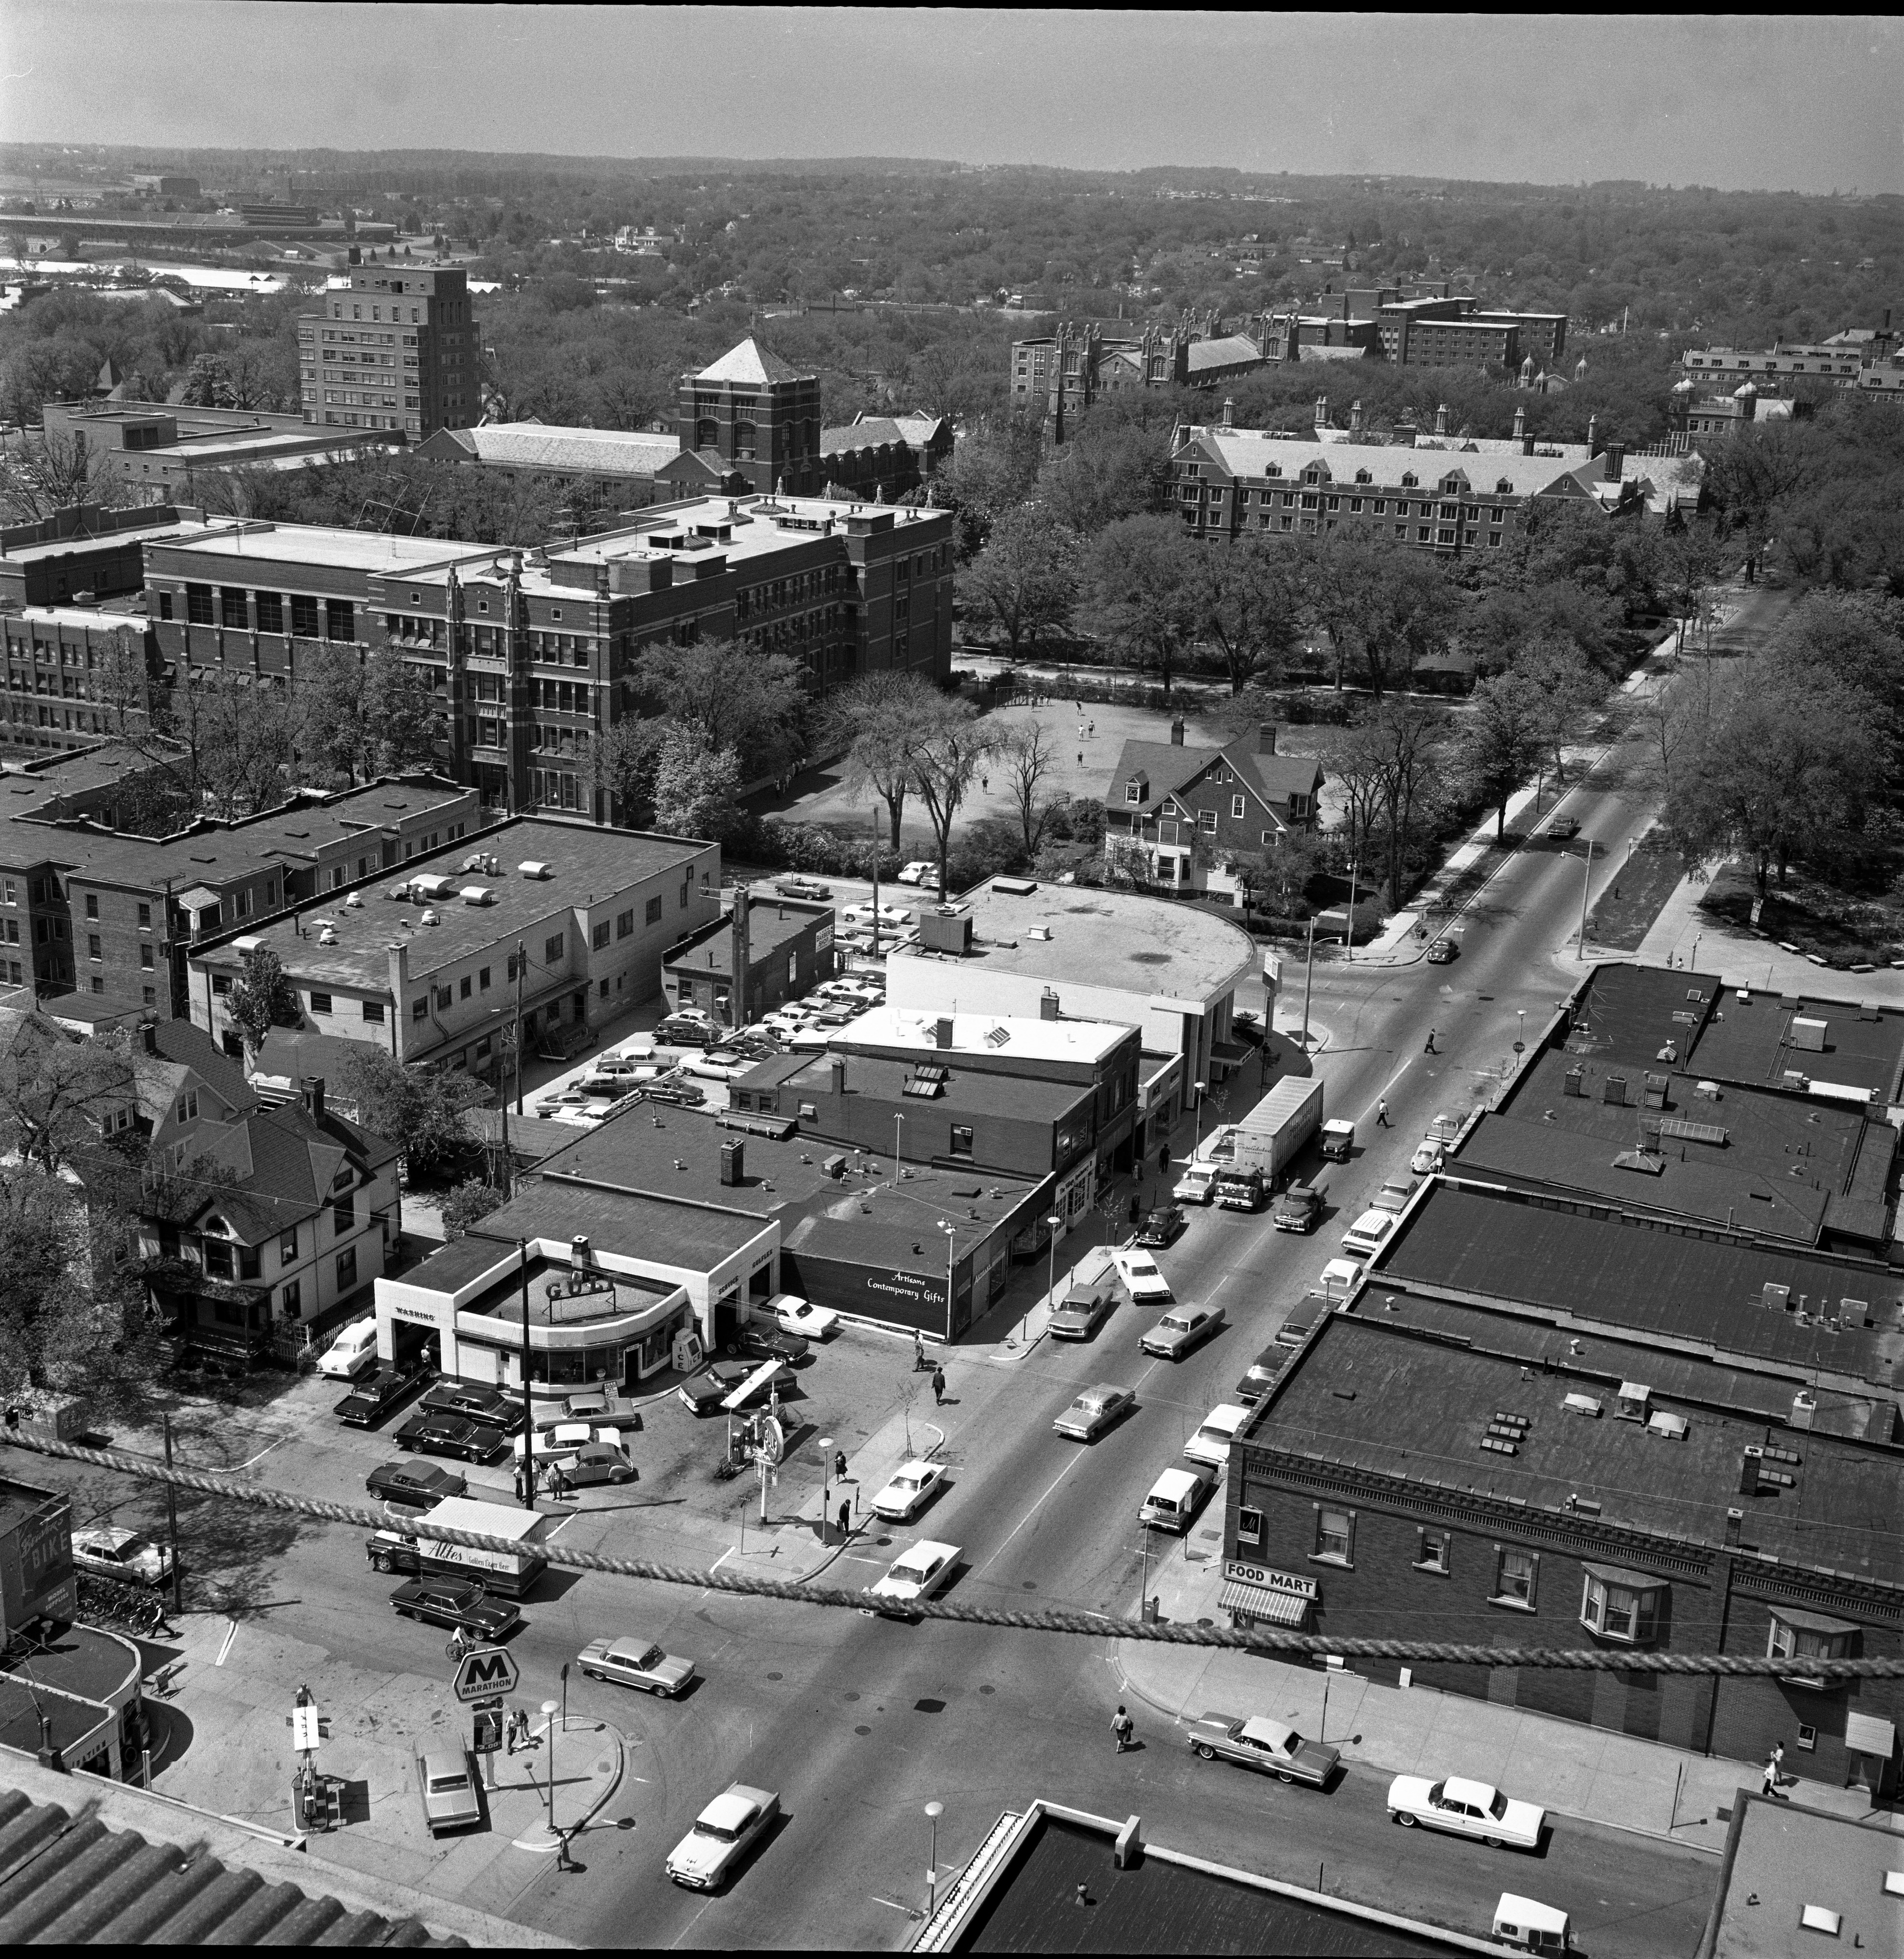 Aerial View From 13th Floor Of University Towers Construction Looking South-West Toward Along S. University Ave., May 27, 1965 image